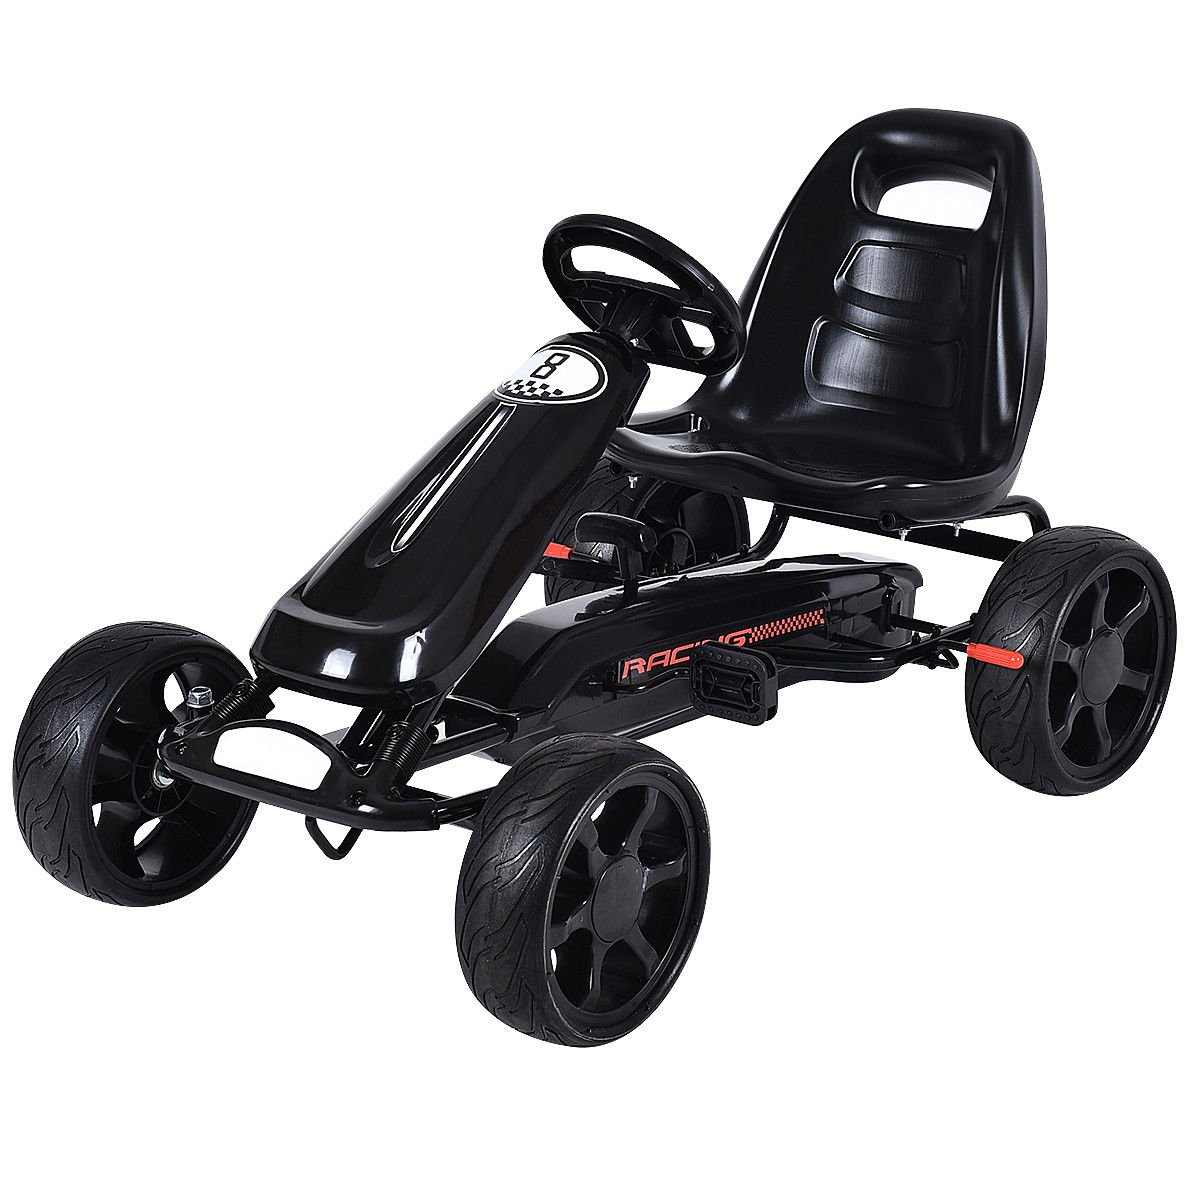 Costzon Go Kart, 4 Wheel Powered Racer Outdoor Toy, Kids Ride On Pedal Car (Black)